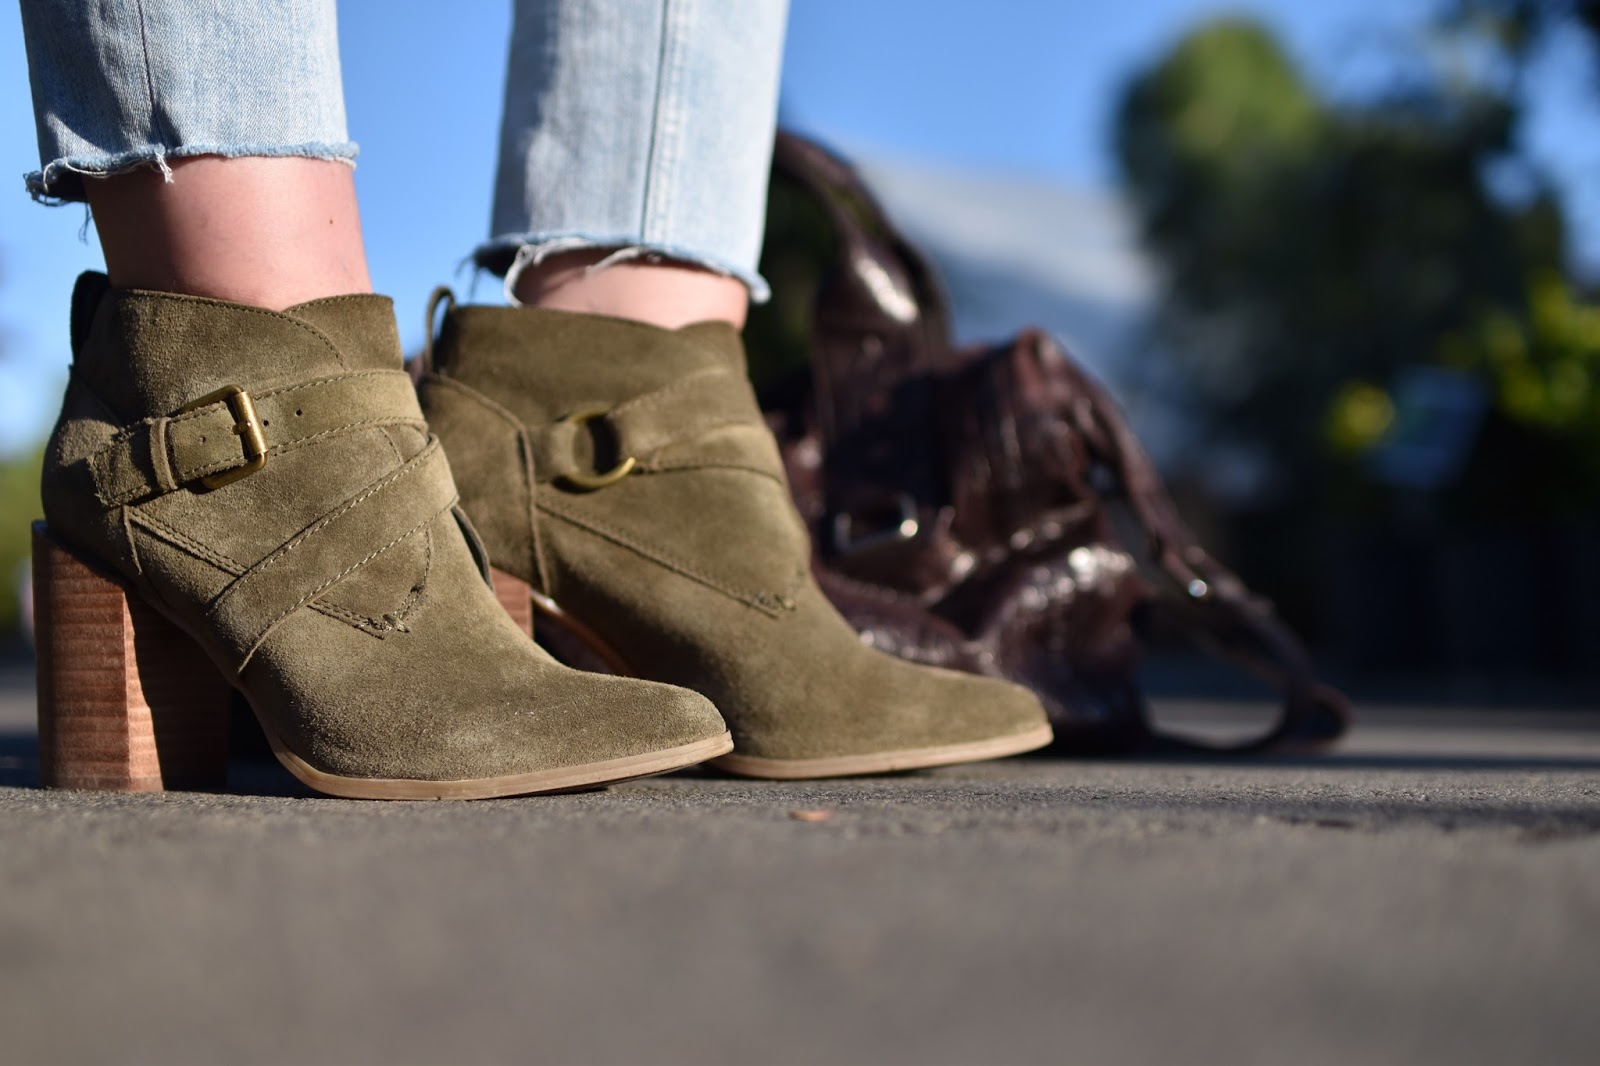 Monika Faulkner outfit inspiration - Nine West olive suede booties